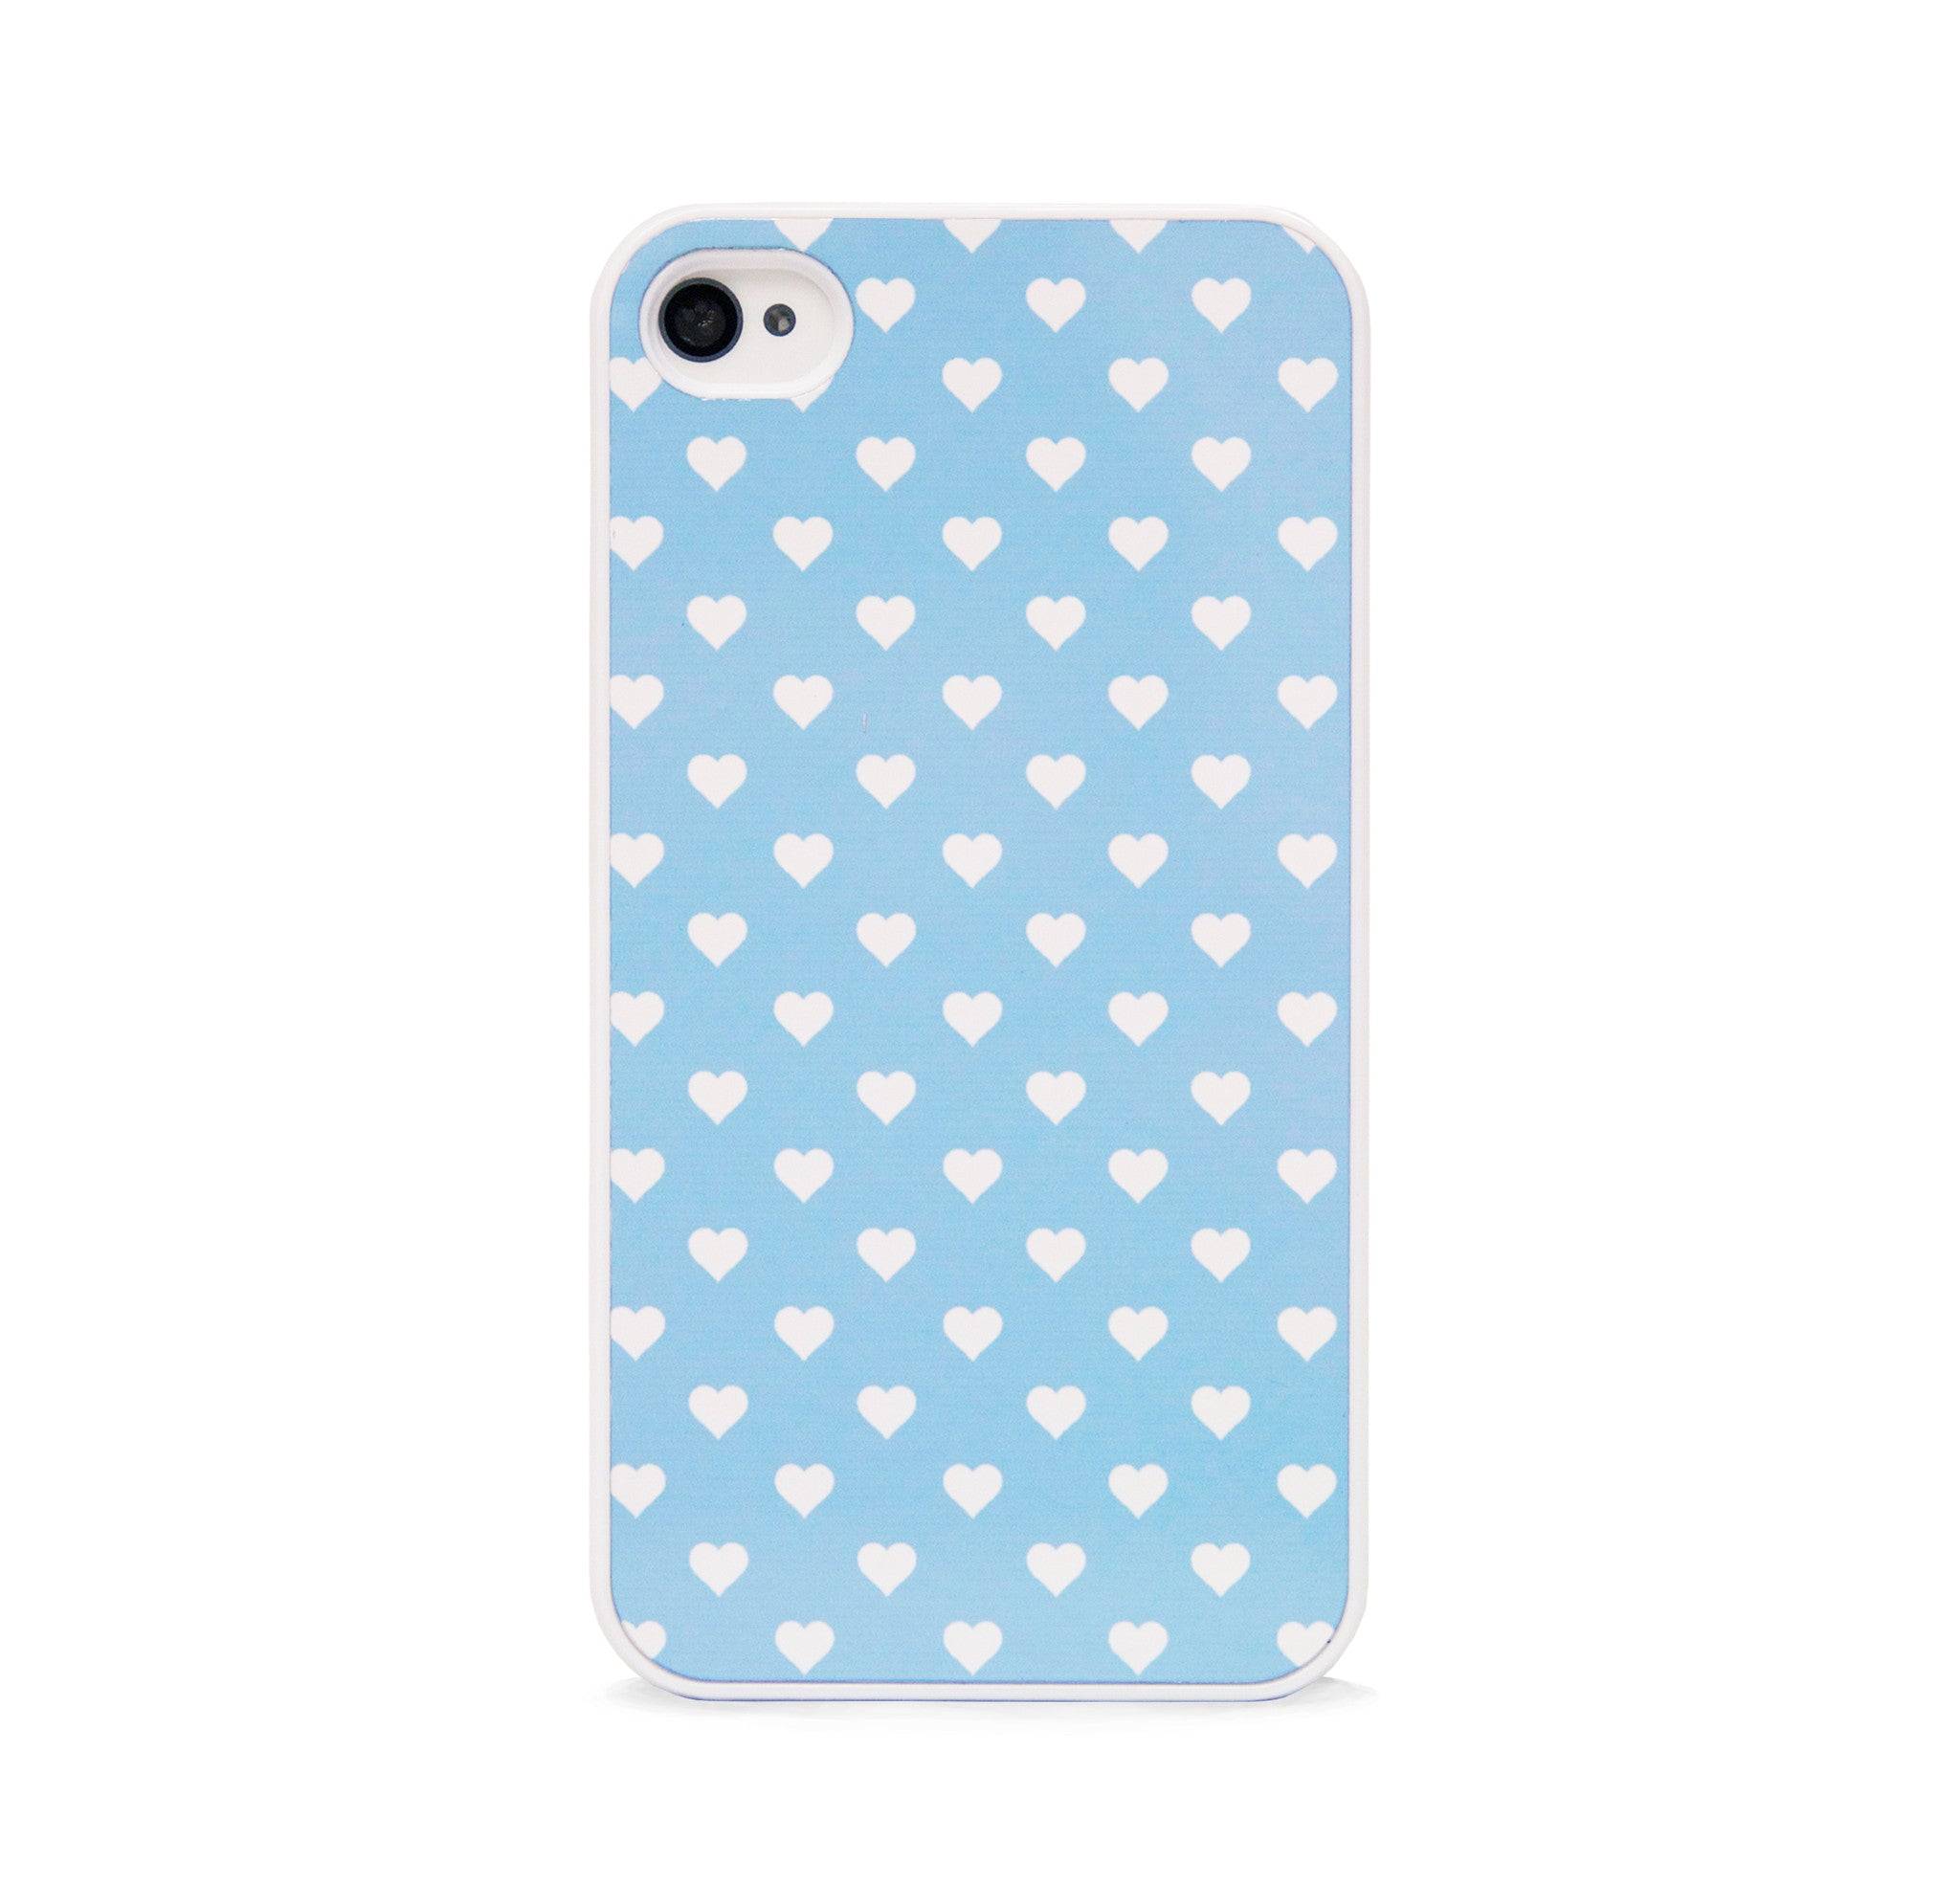 POLKA HEART BLUE FOR IPHONE 4/4S